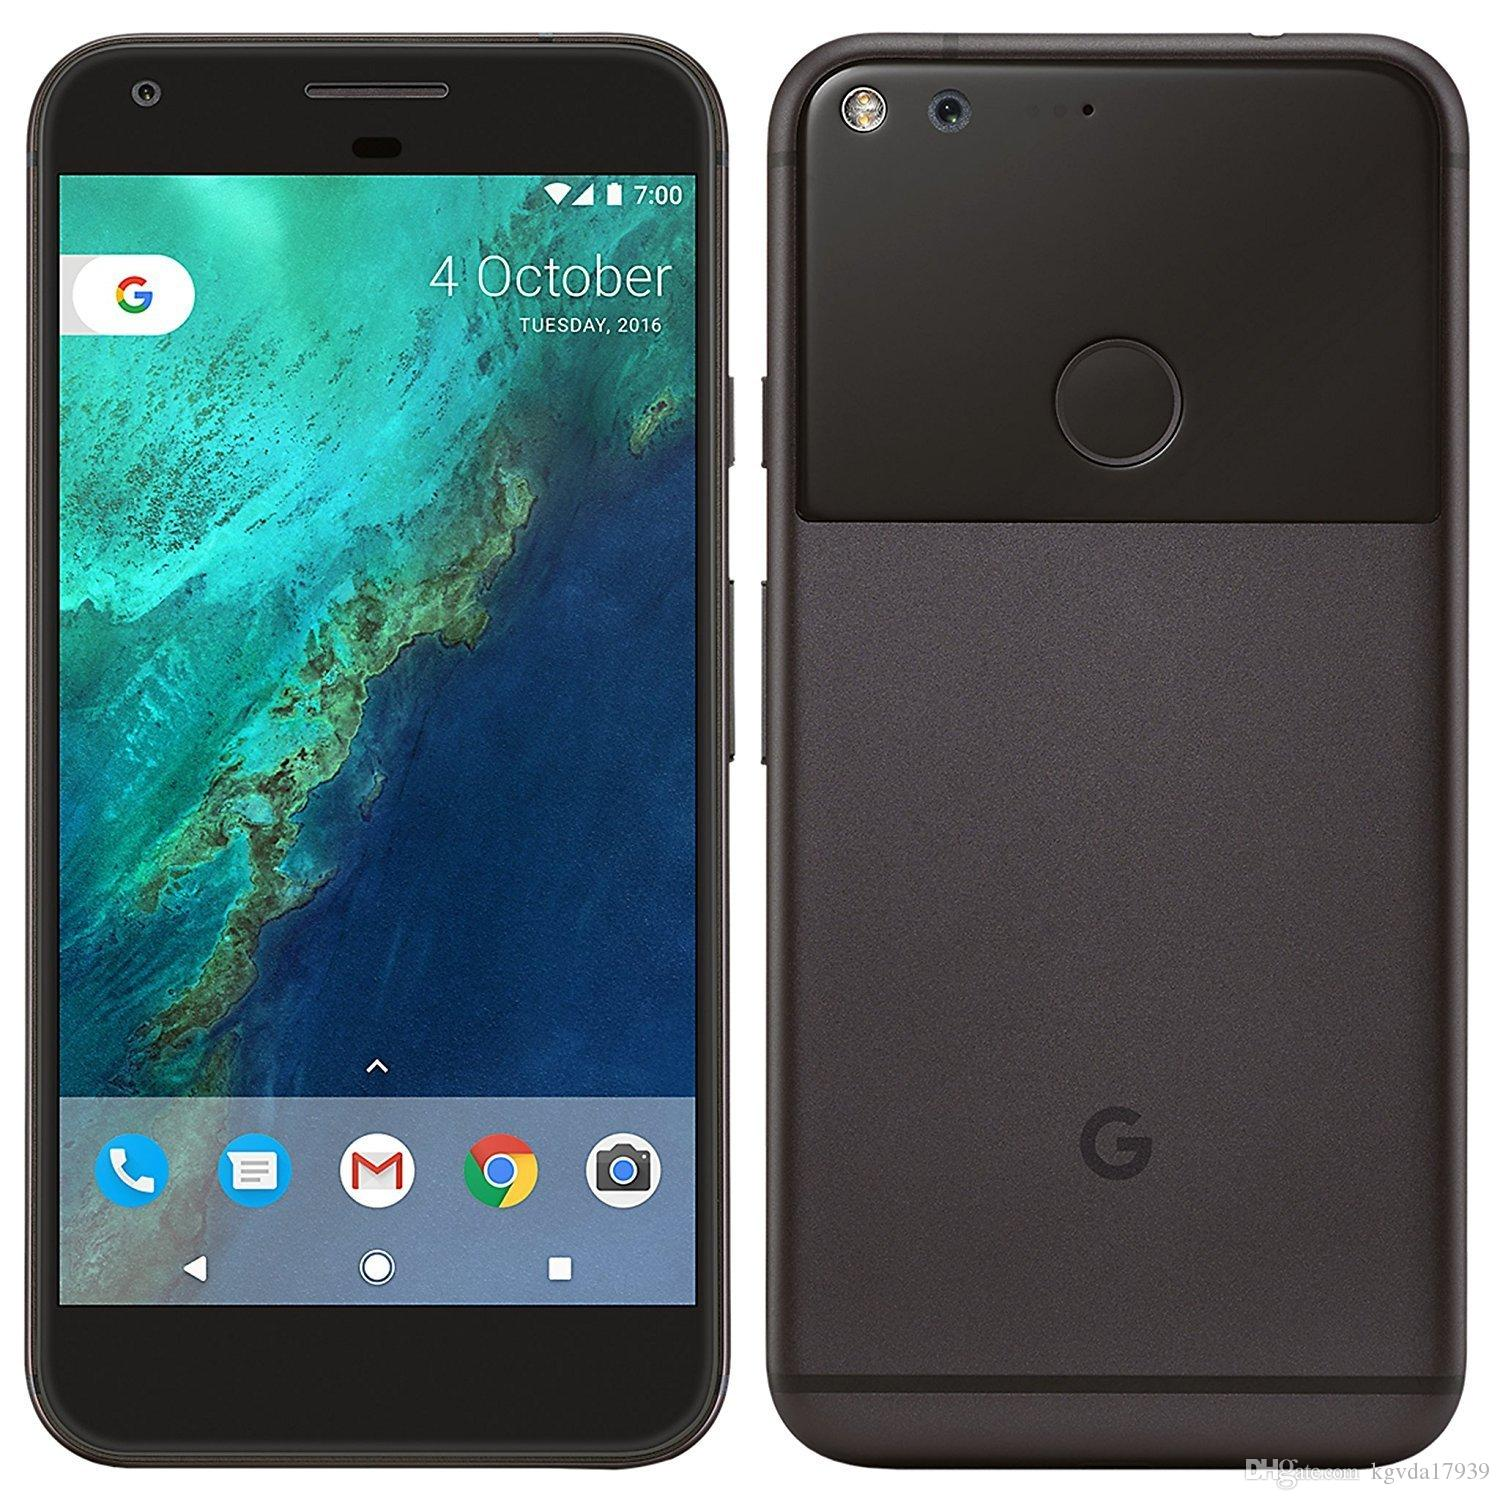 Free Shipping Google Pixel 3 XL Full Color Unlocked Style Bar RAM 4 GB  Storage Capacity 128 GB Color Black Features Proximity Wholesale